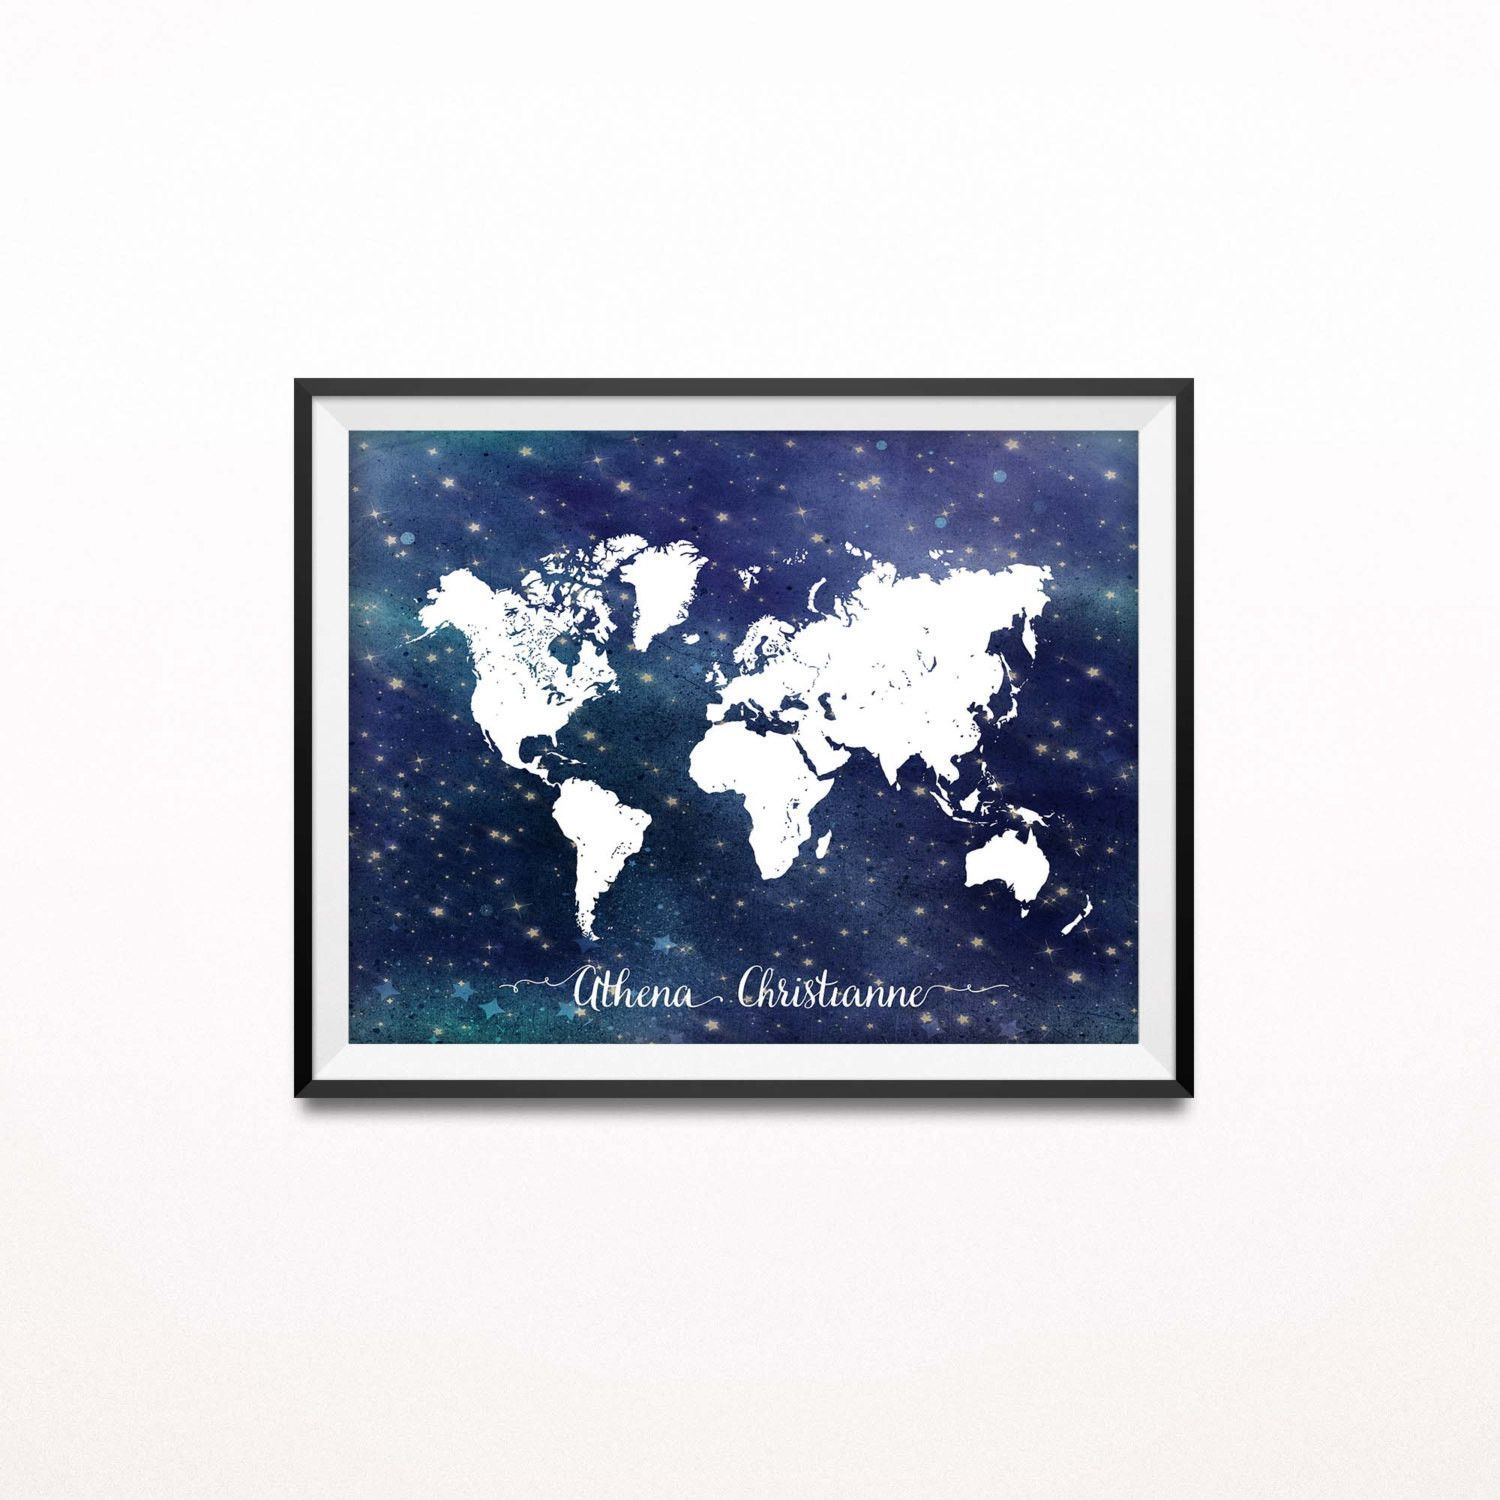 Personalized nursery print travel art print nautical stars a map of the world in white featured on a starry night background perfect for your travel themed nursery playroom dorm room or to give as a gift to an gumiabroncs Gallery